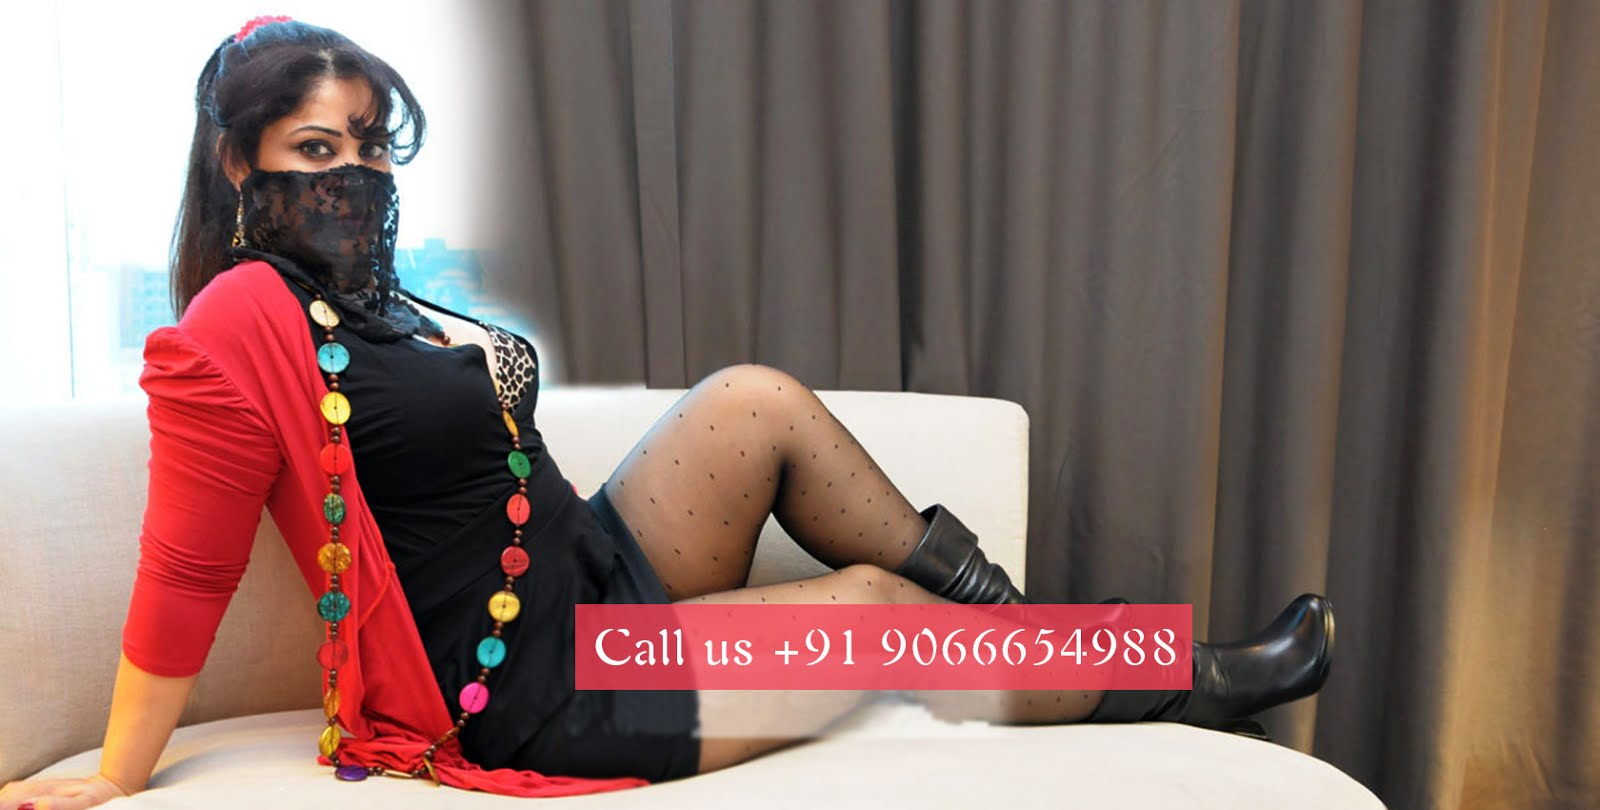 Gipi-Your flabby hot Independent Escort in Bangalore – One of the finest female Bangalore escorts